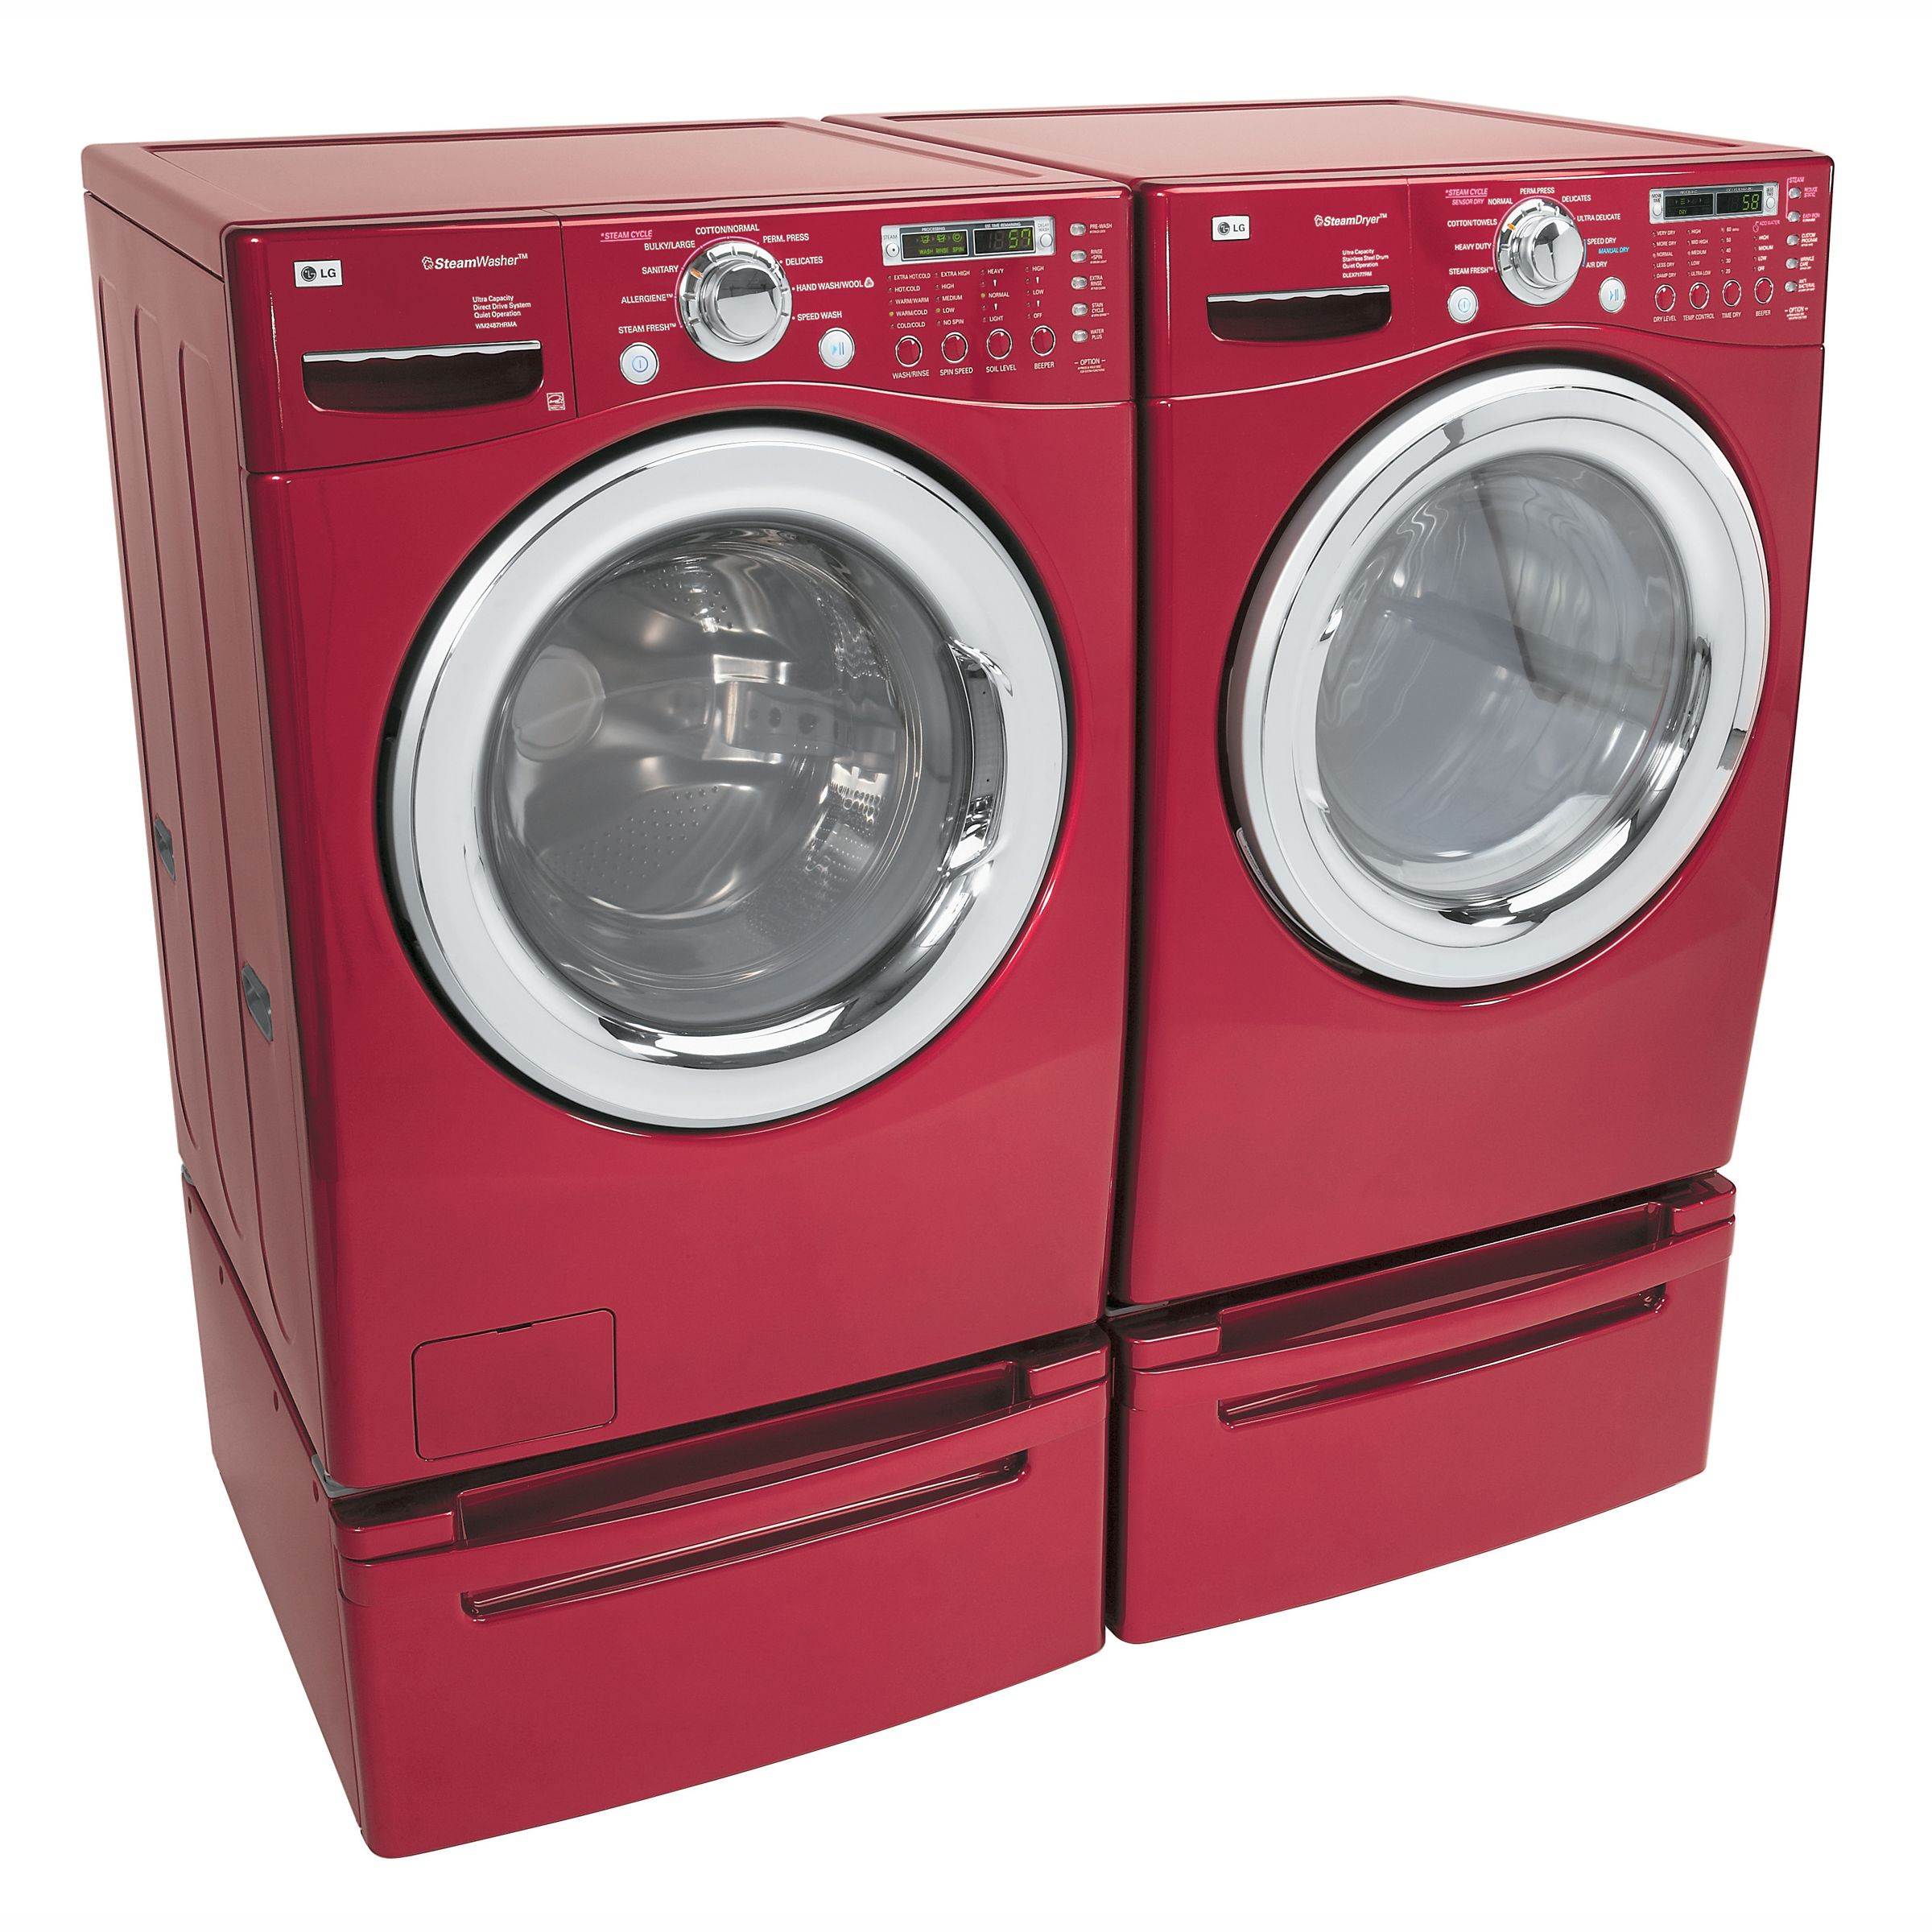 LG 4.2 cu. ft. Ultra Capacity SteamWasher™ w/ Allergiene™